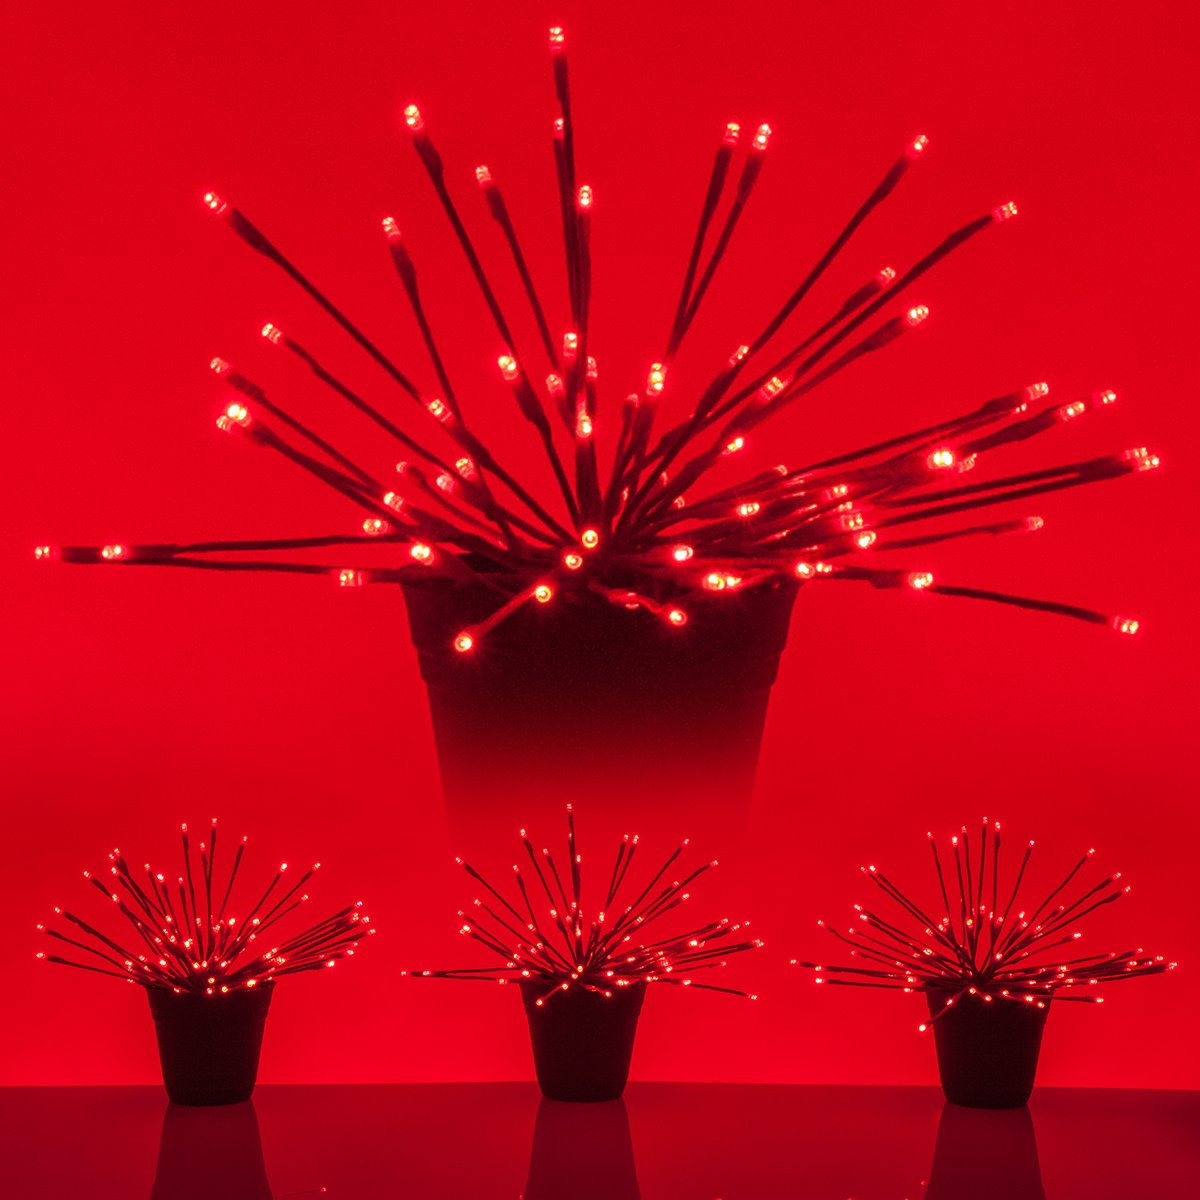 LED Starburst 5mm Starlight Christmas Lights - Light Balls - Lighted Branches (15'', Red Branches/Red Twinkle Lights, Set of 3)